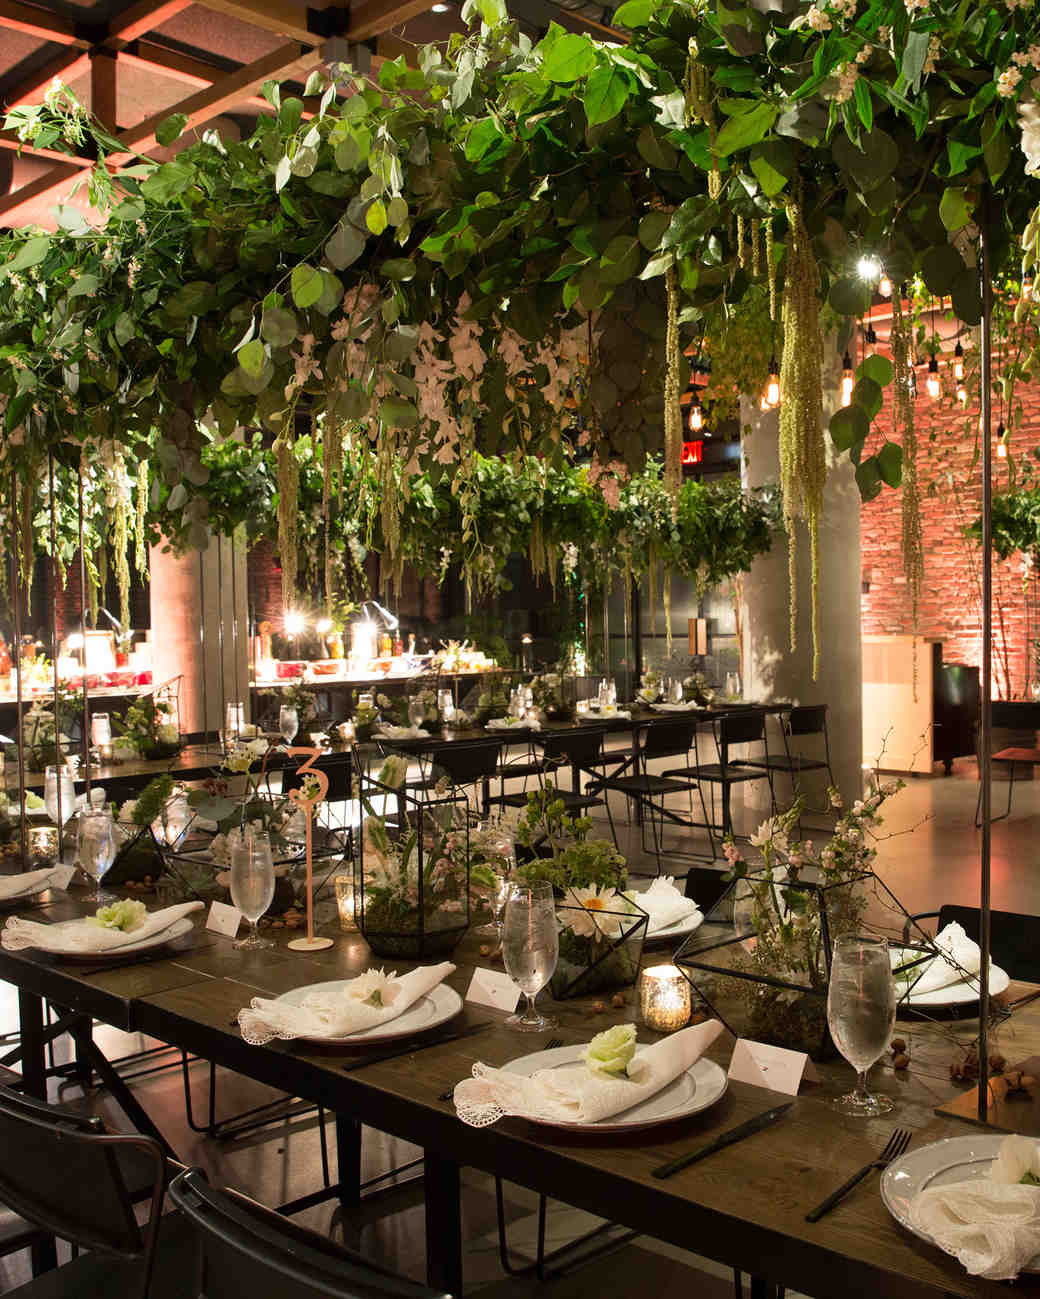 Lilly and Chris NYC Wedding, Reception with Hanging Greenery Installations